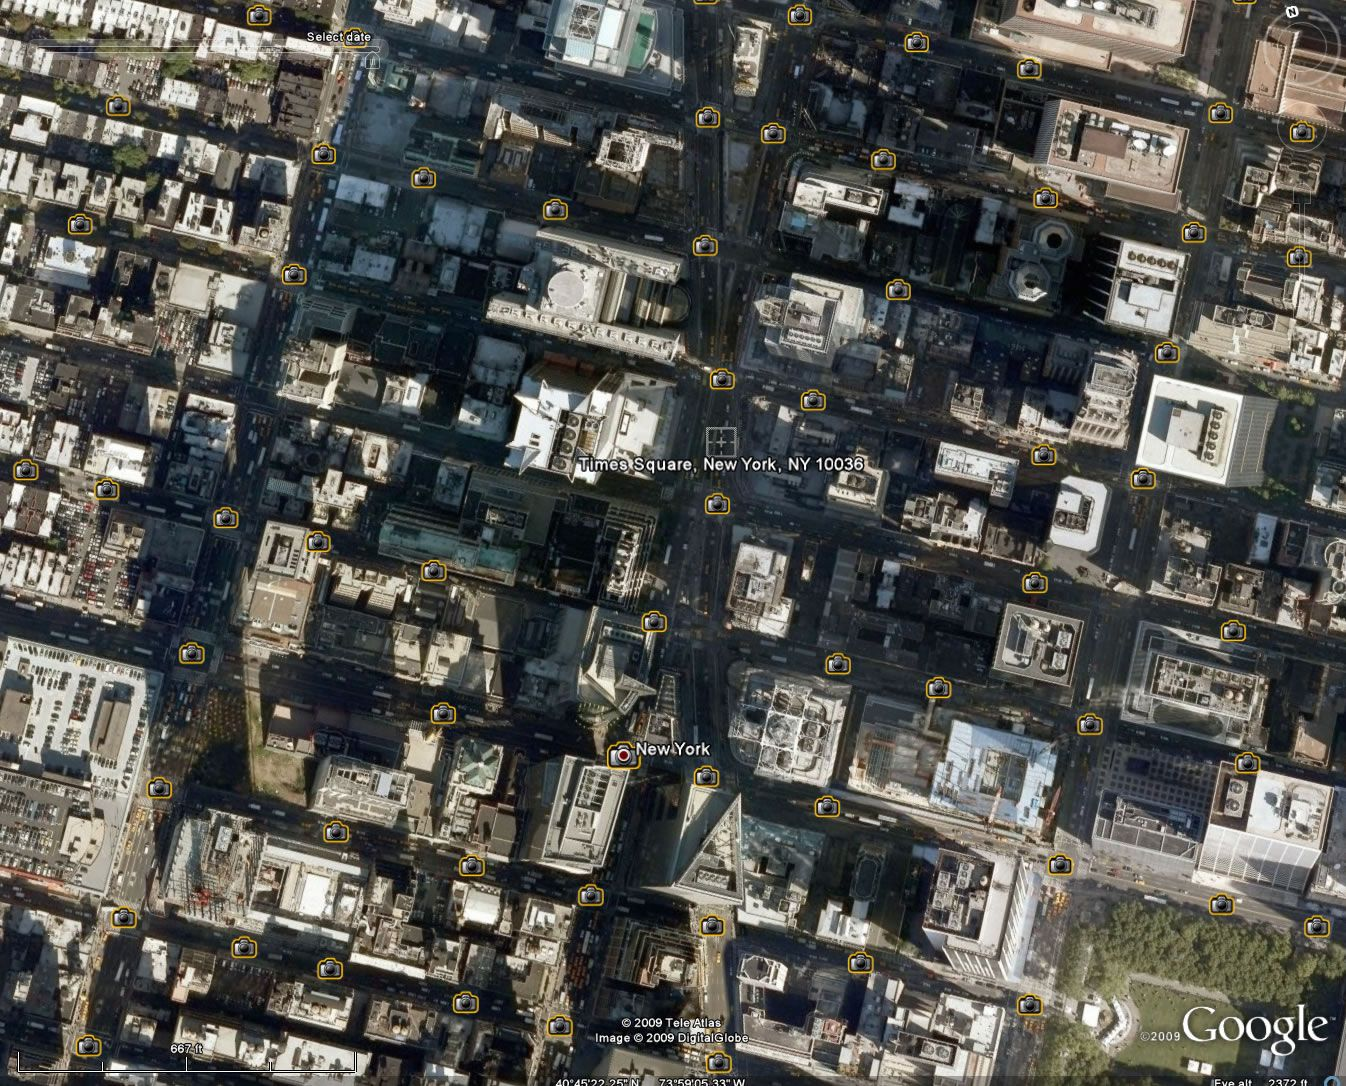 Google Earth Live See Satellite View Of Your House Fly Directly - Earth map live satellite view